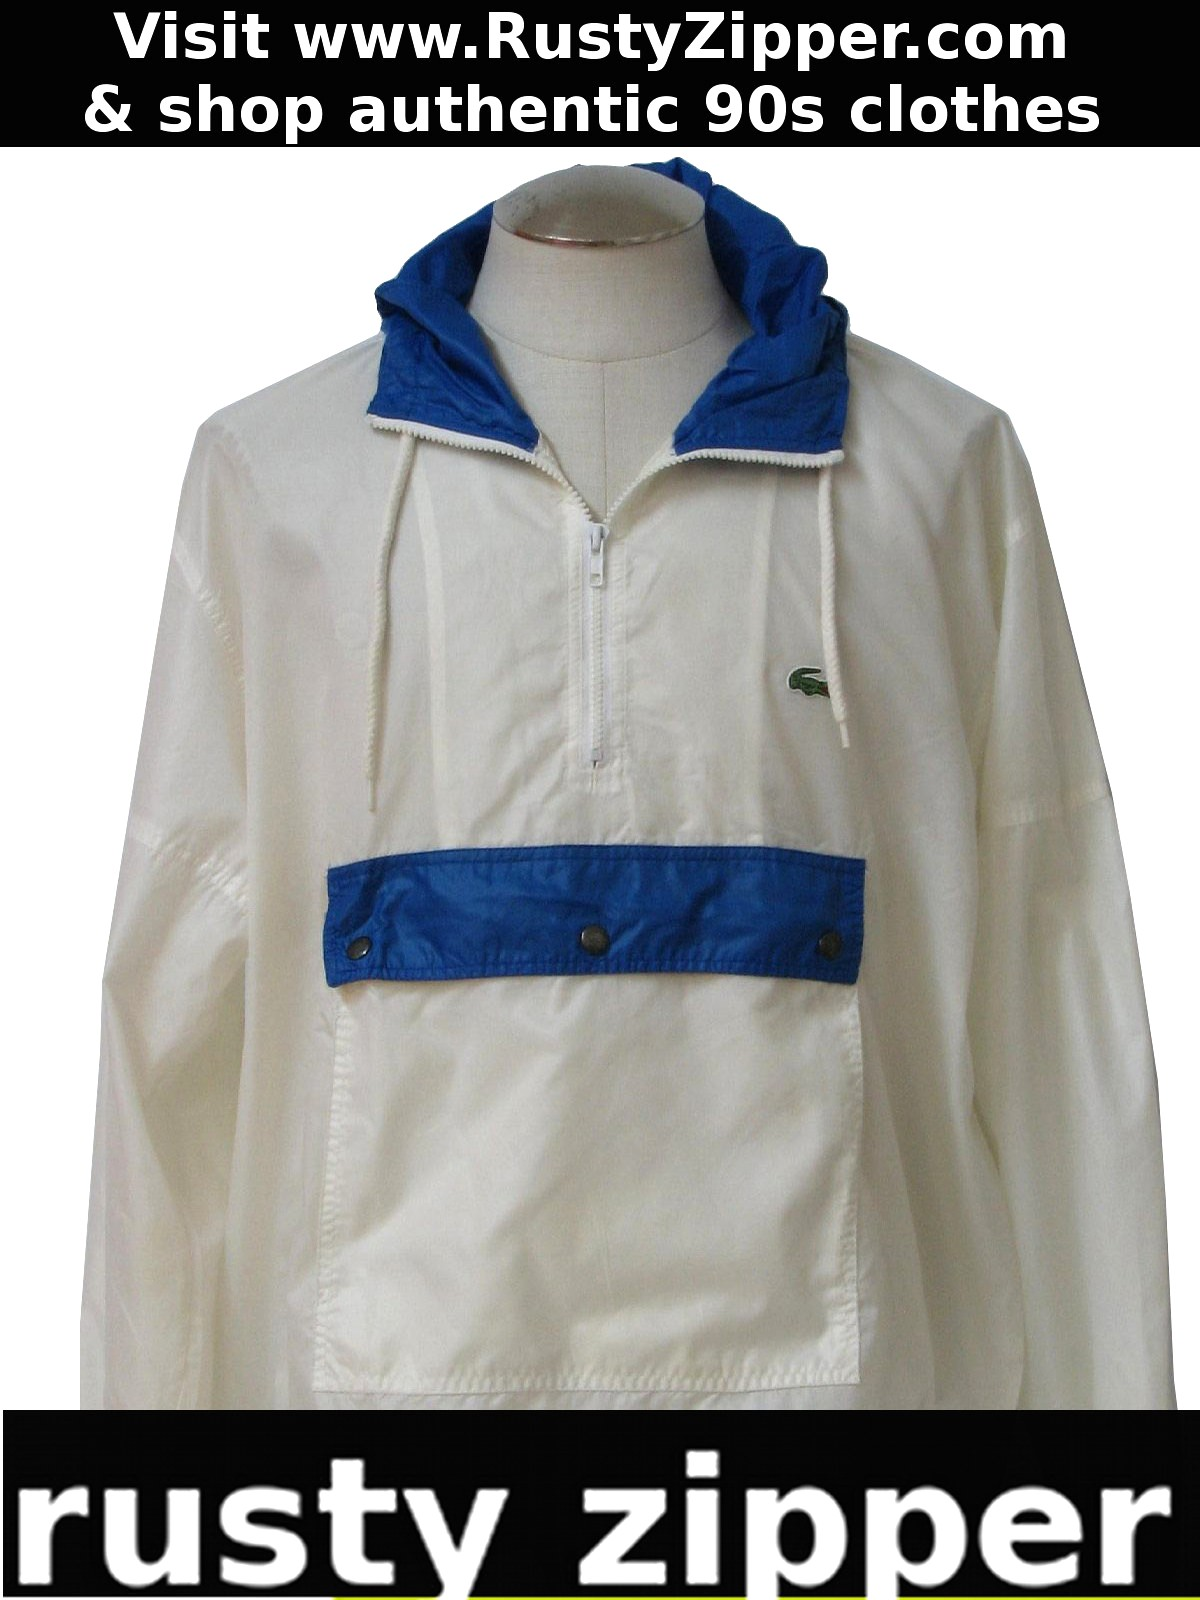 c21f48b76d7f88 Nineties lacoste jacket lacoste mens white and royal blue jpg 1200x1600 Lacoste  windbreaker jackets for men